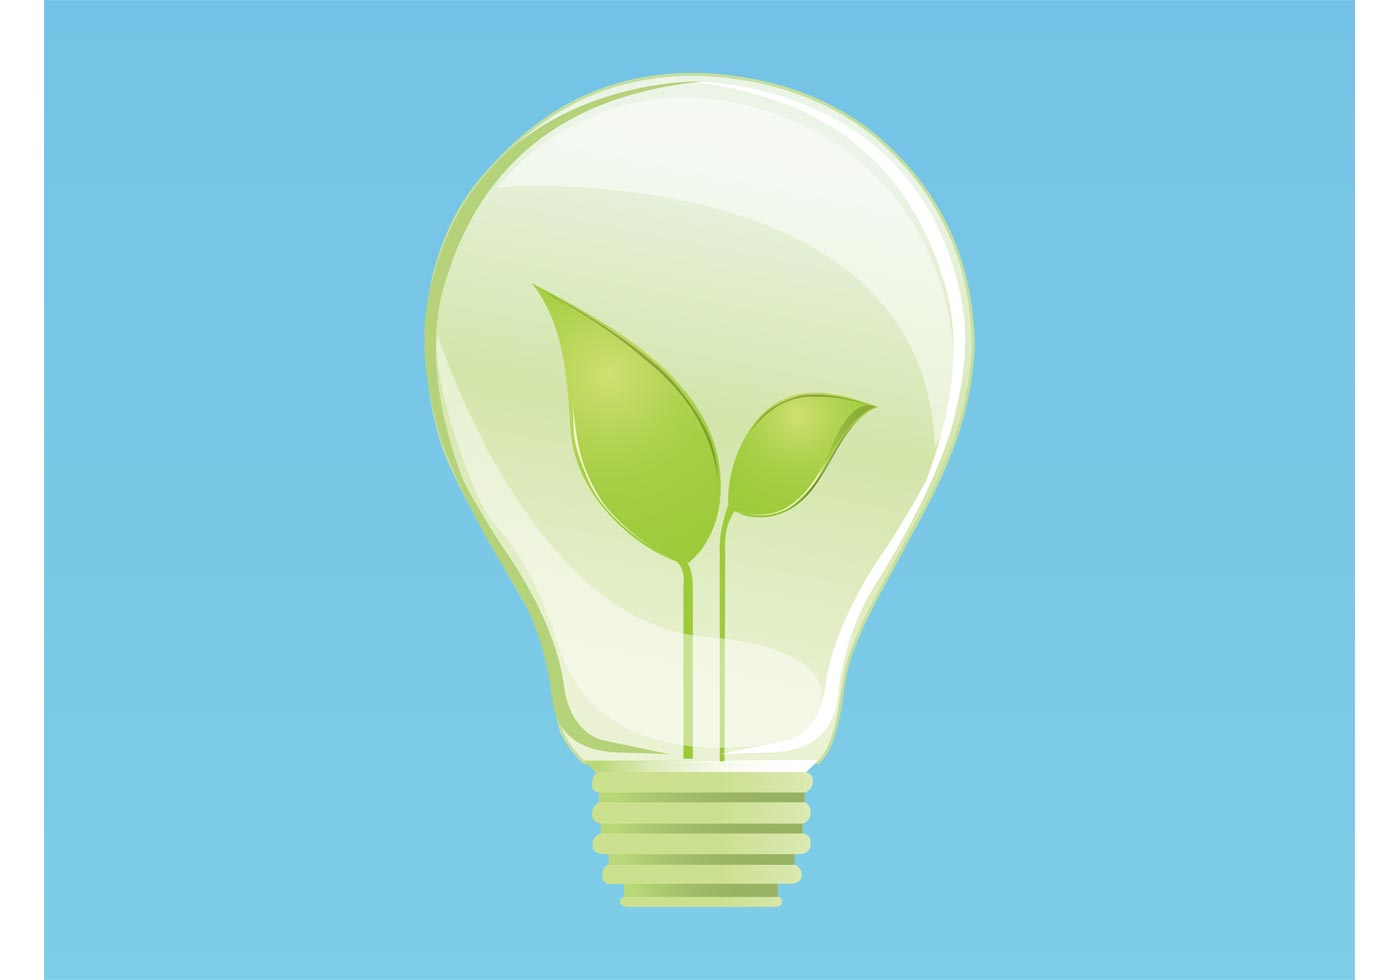 eco lightbulb download free vector art stock graphics